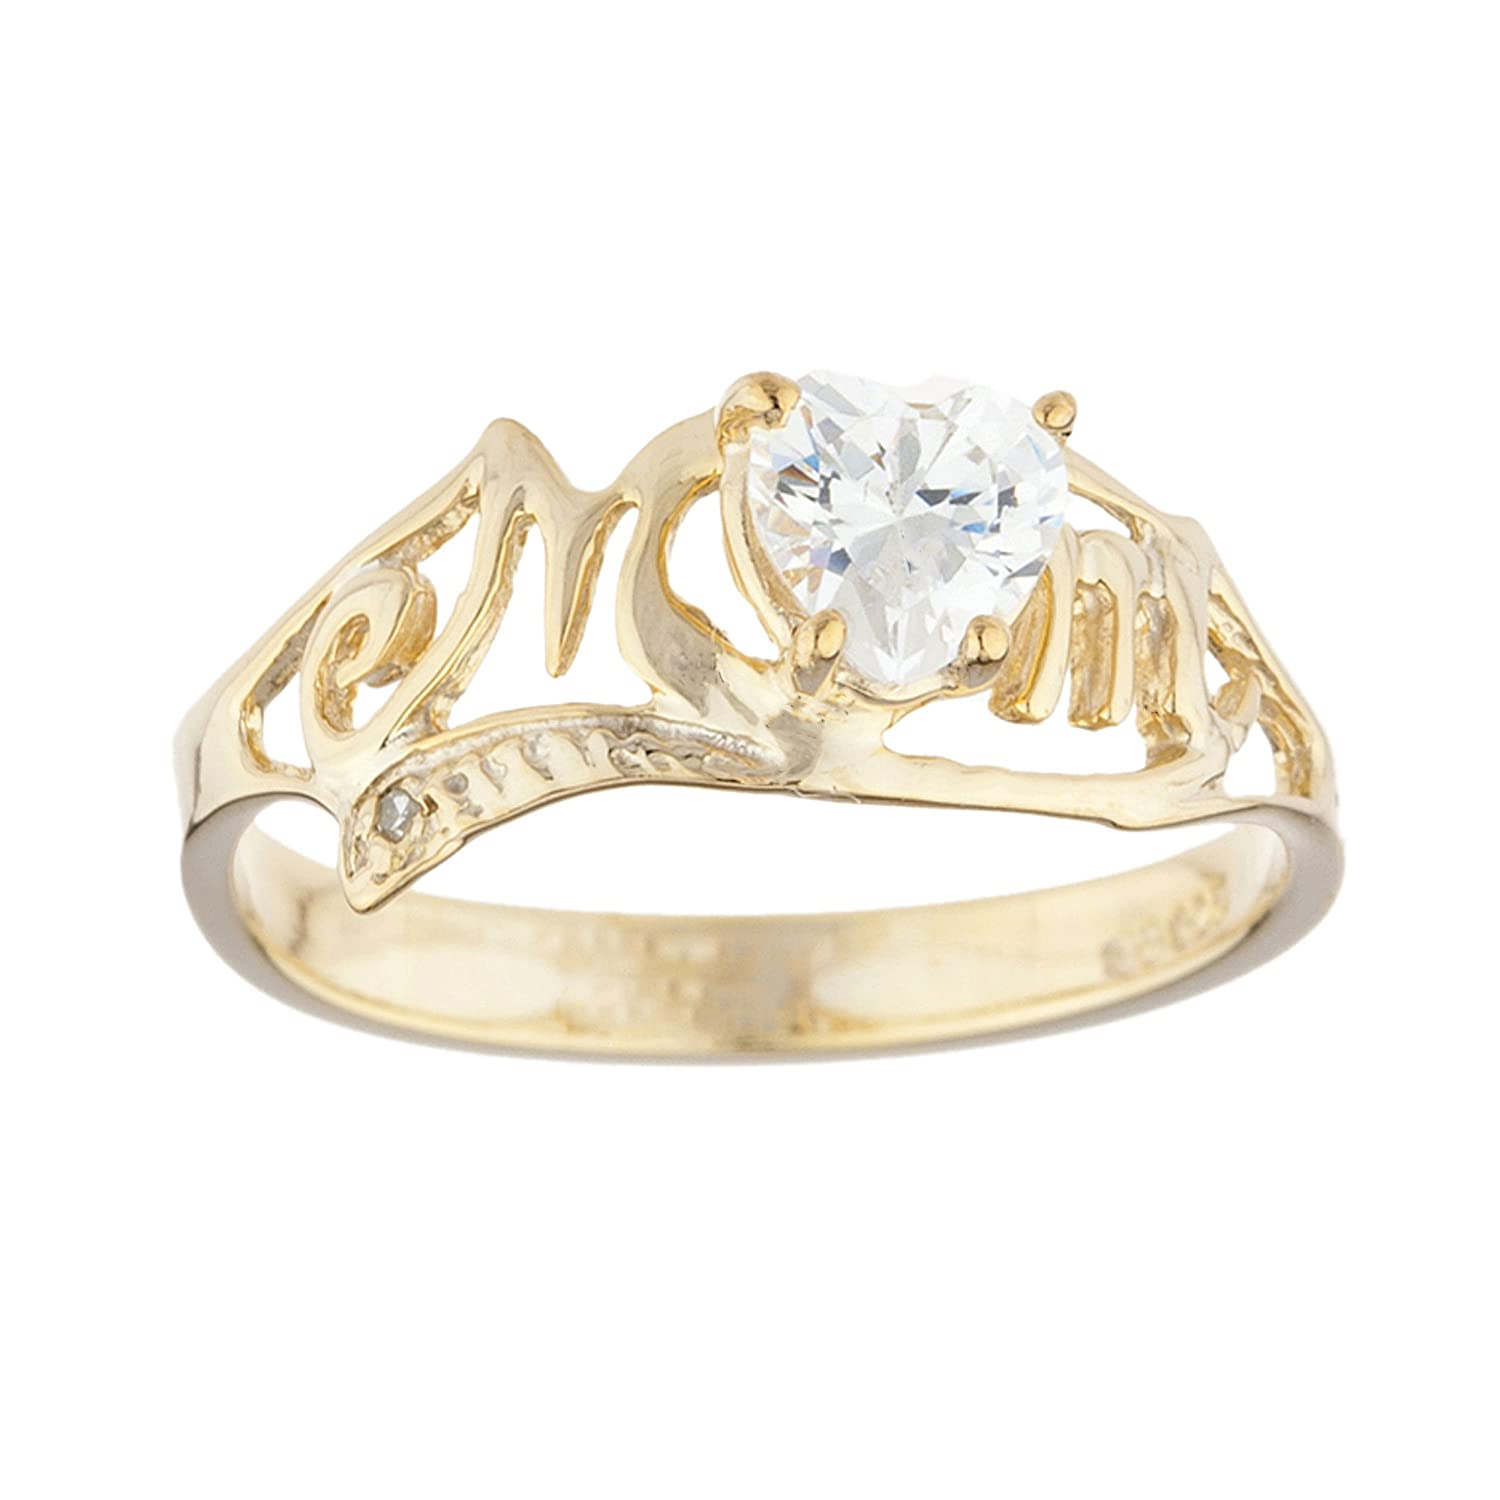 0.50 Ct White Sapphire & Diamond Heart Mom Ring 14Kt Yellow Gold Plated Over .925 Sterling Silver